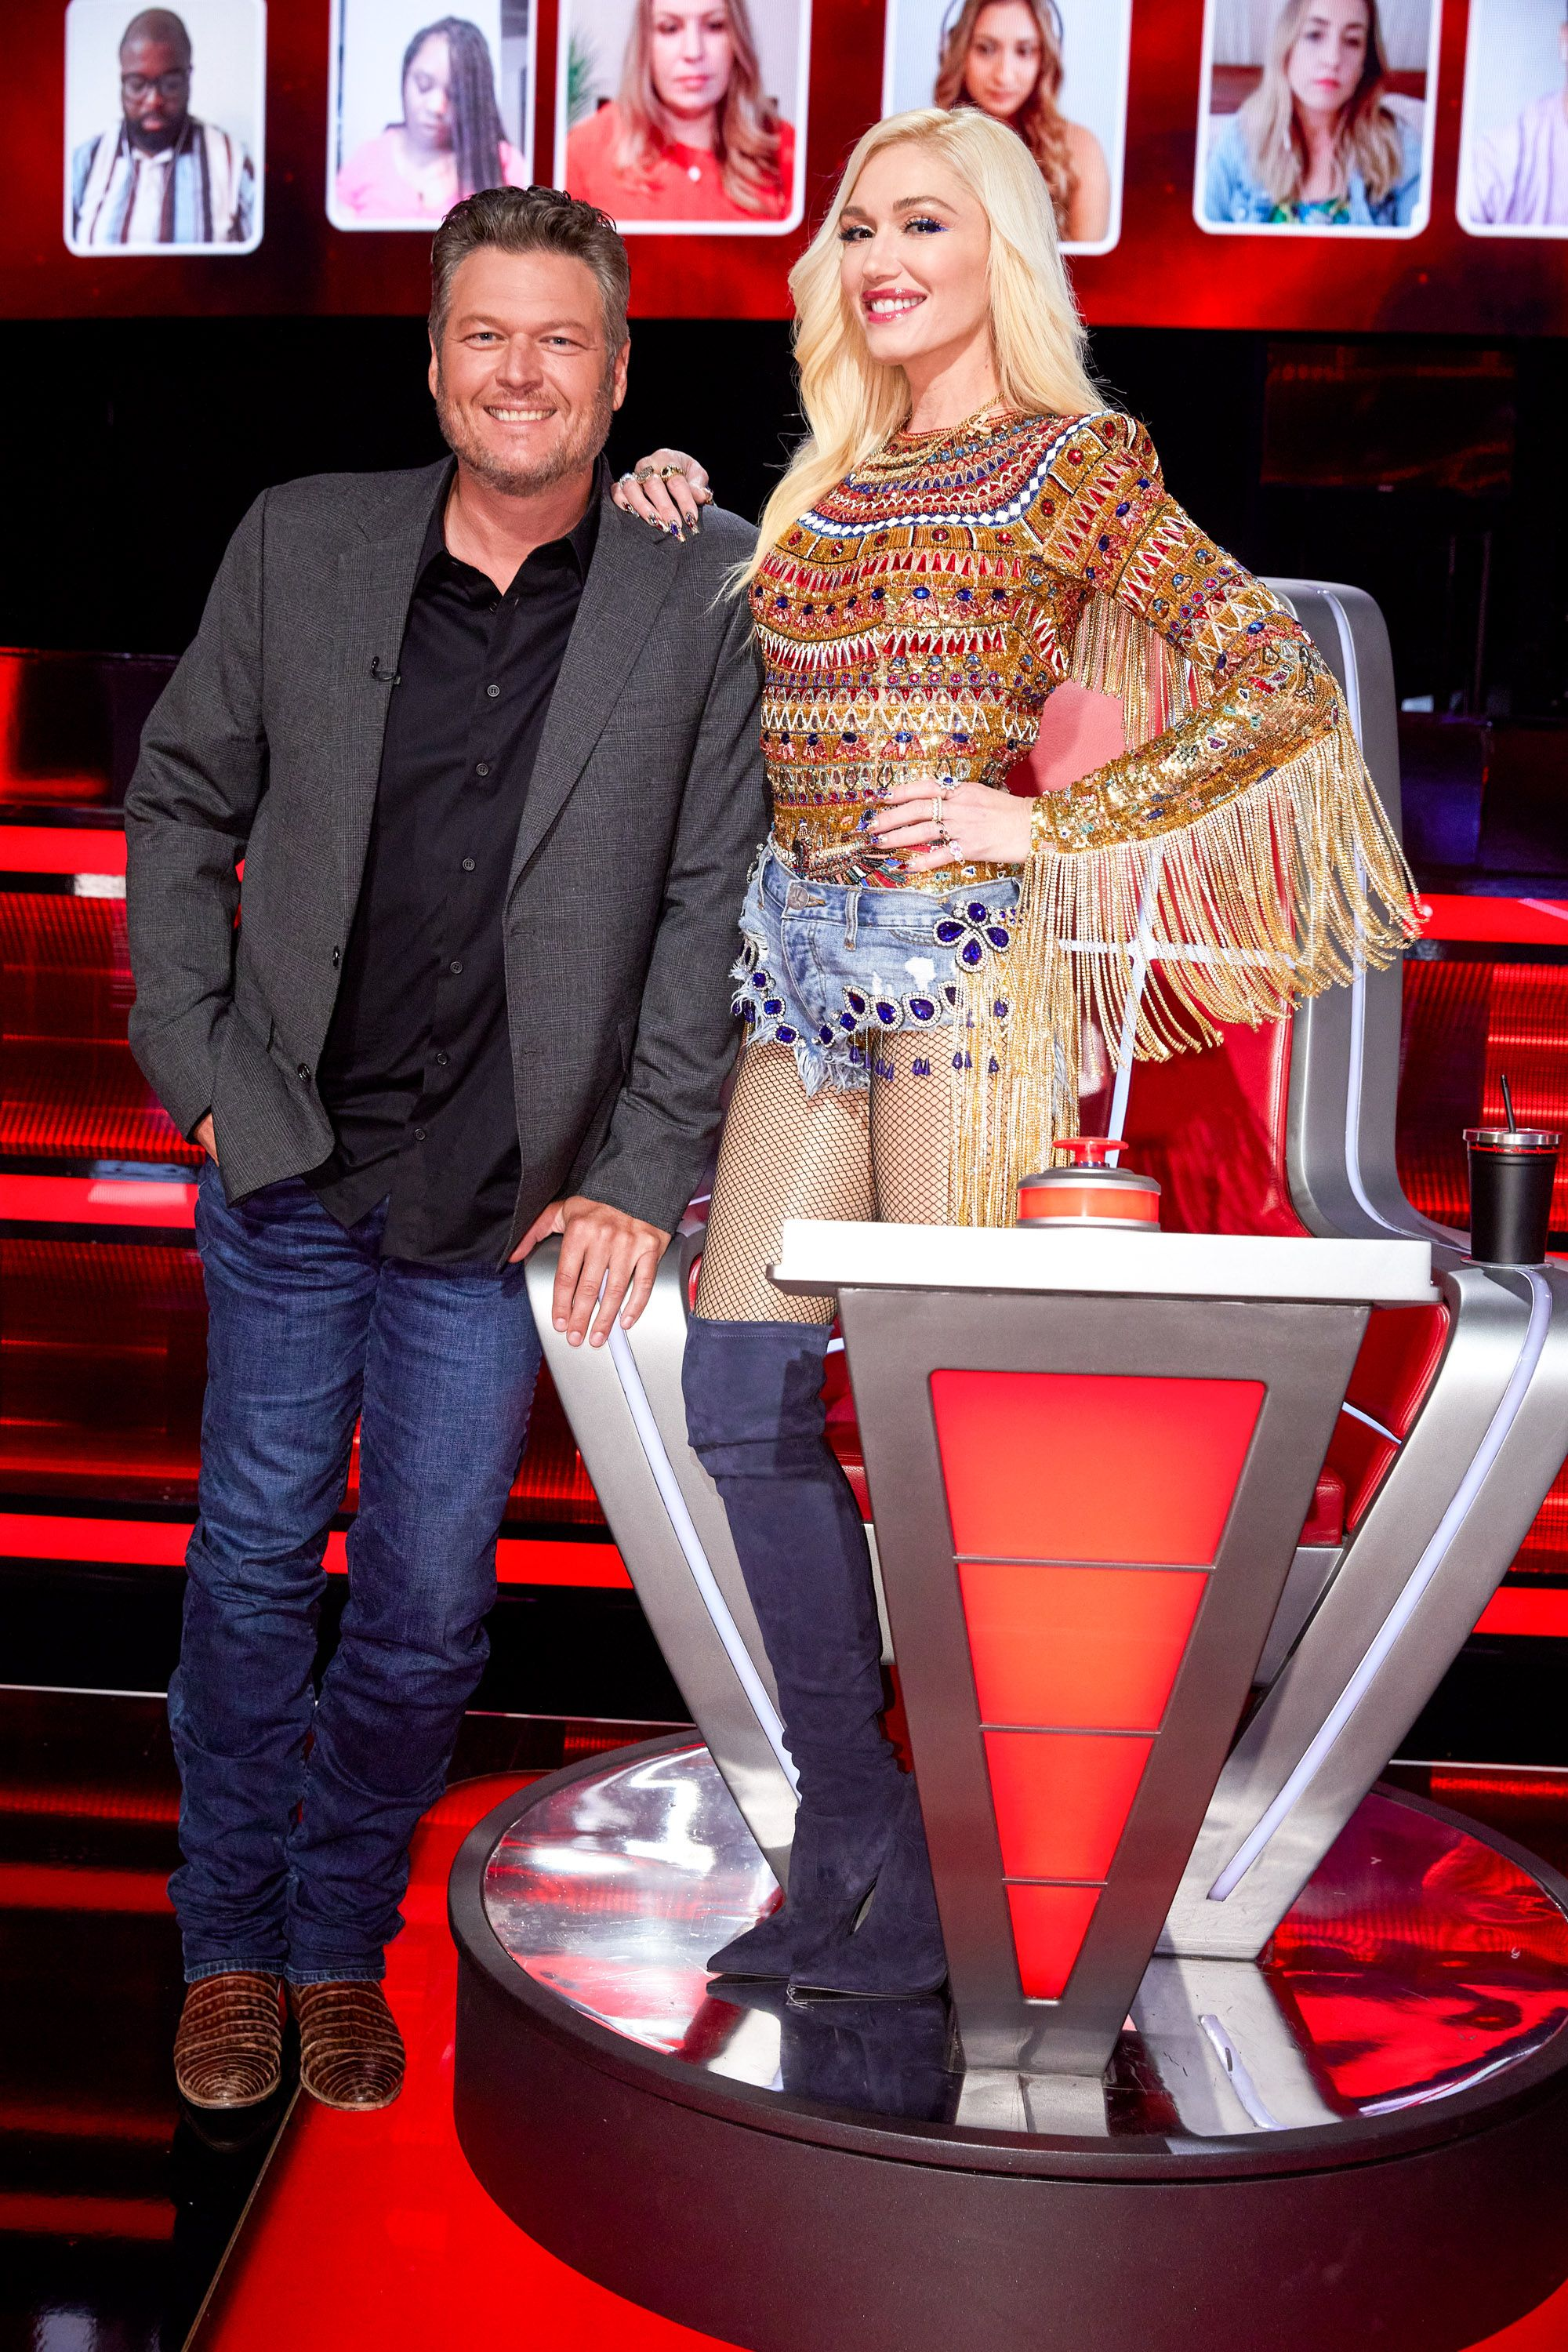 """Blake Shelton and Gwen Stefani on season 19 of """"The Voice's"""" """"Battle Rounds"""" on September 8, 2020 